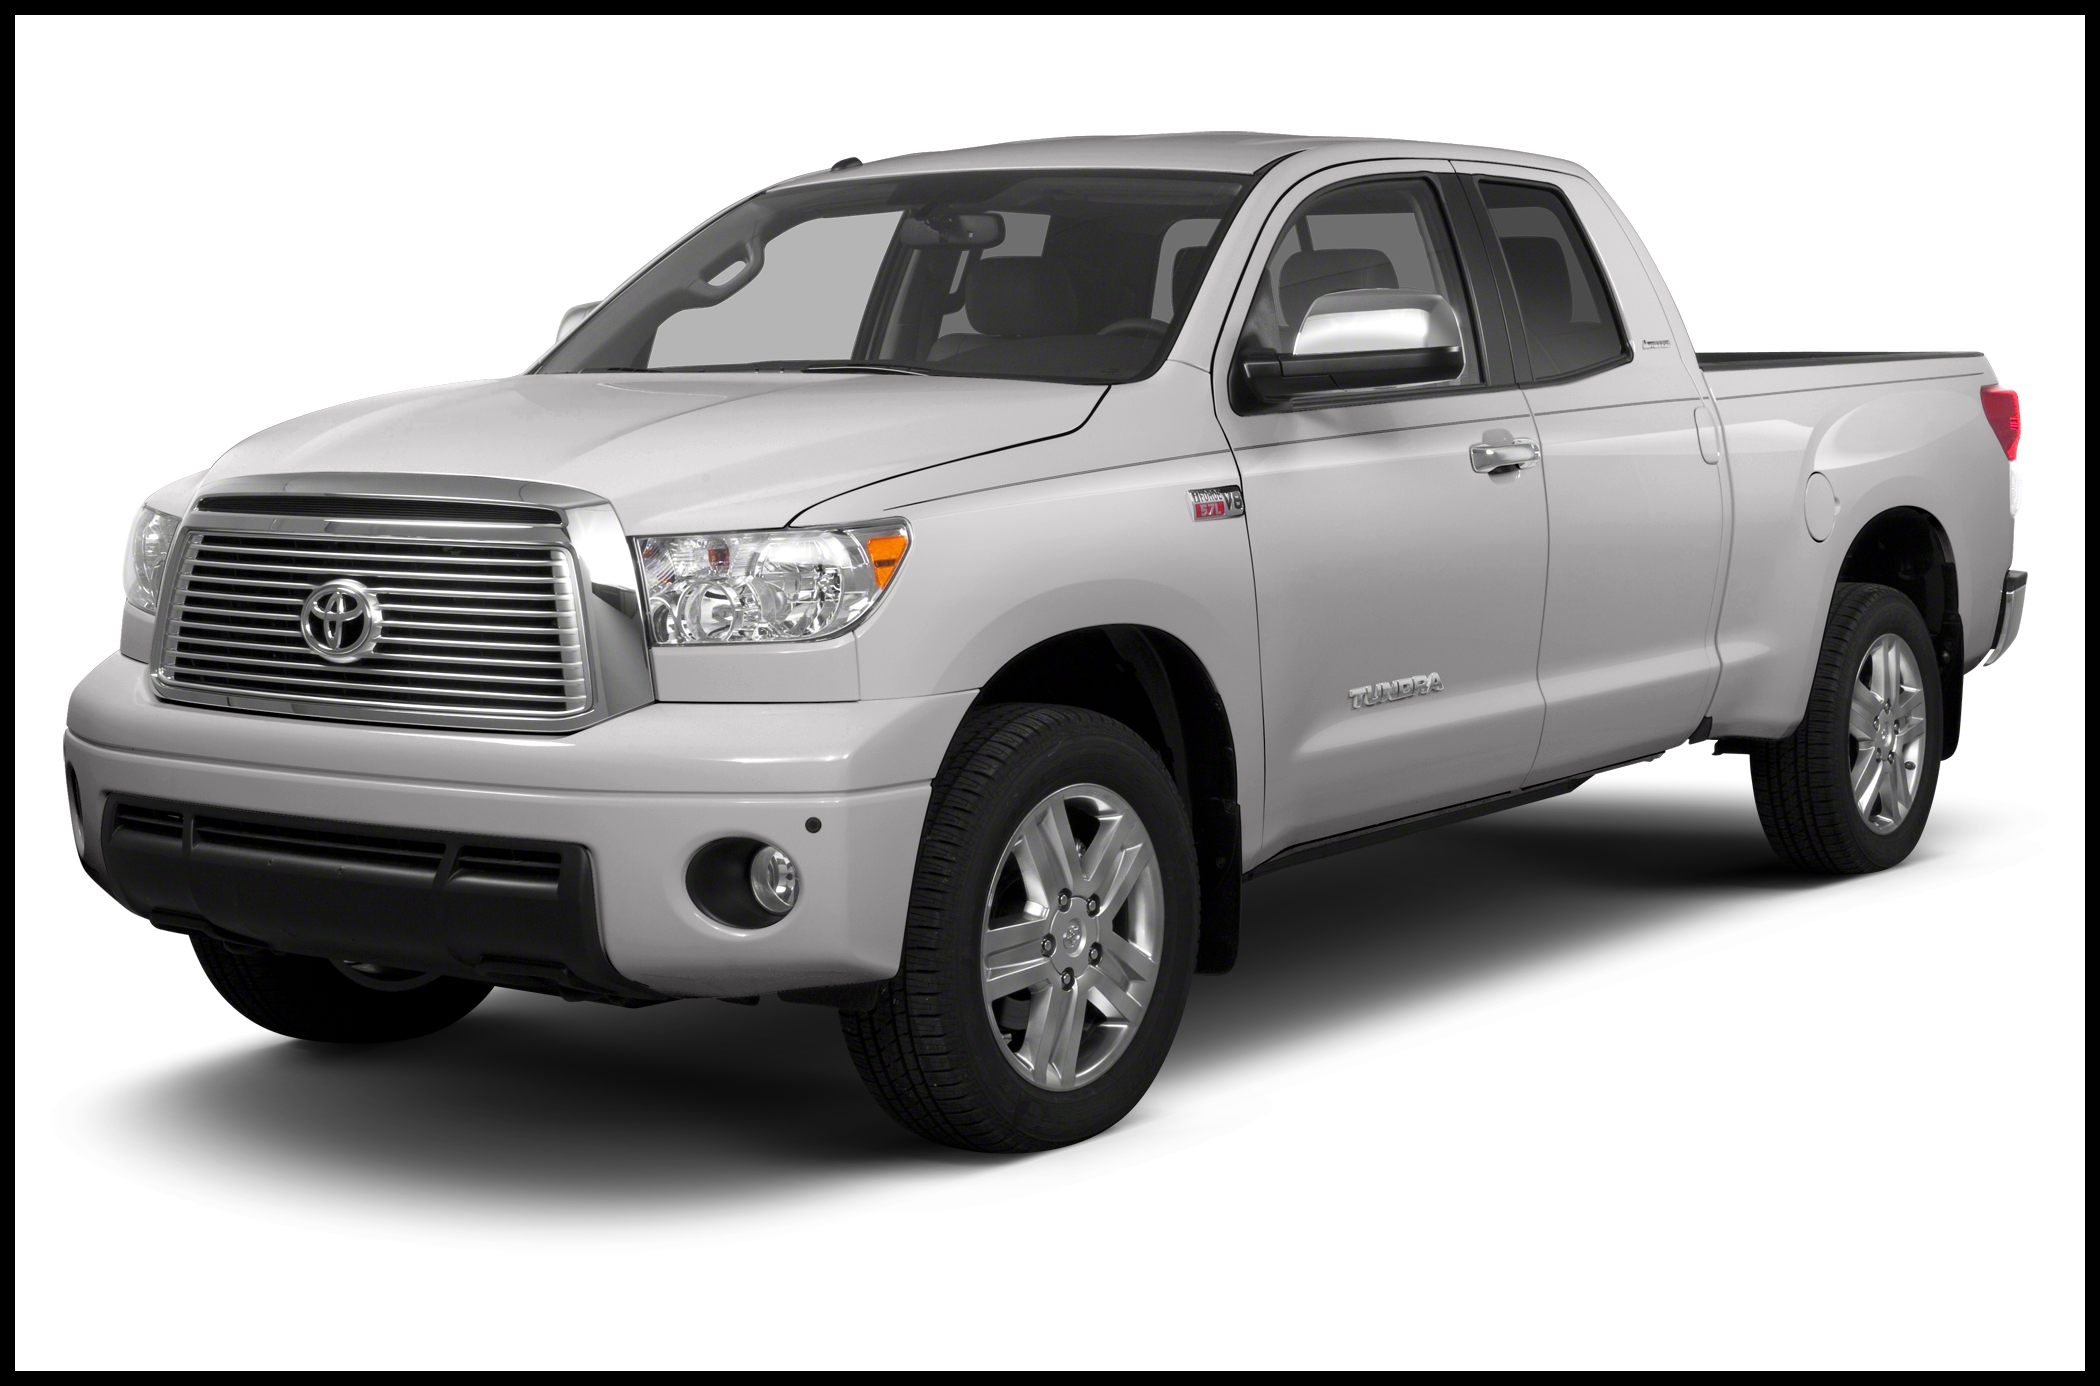 2013 Toyota Tundra Grade 5 7L V8 4x4 Double Cab 6 6 ft box 145 7 in WB Specs and Prices